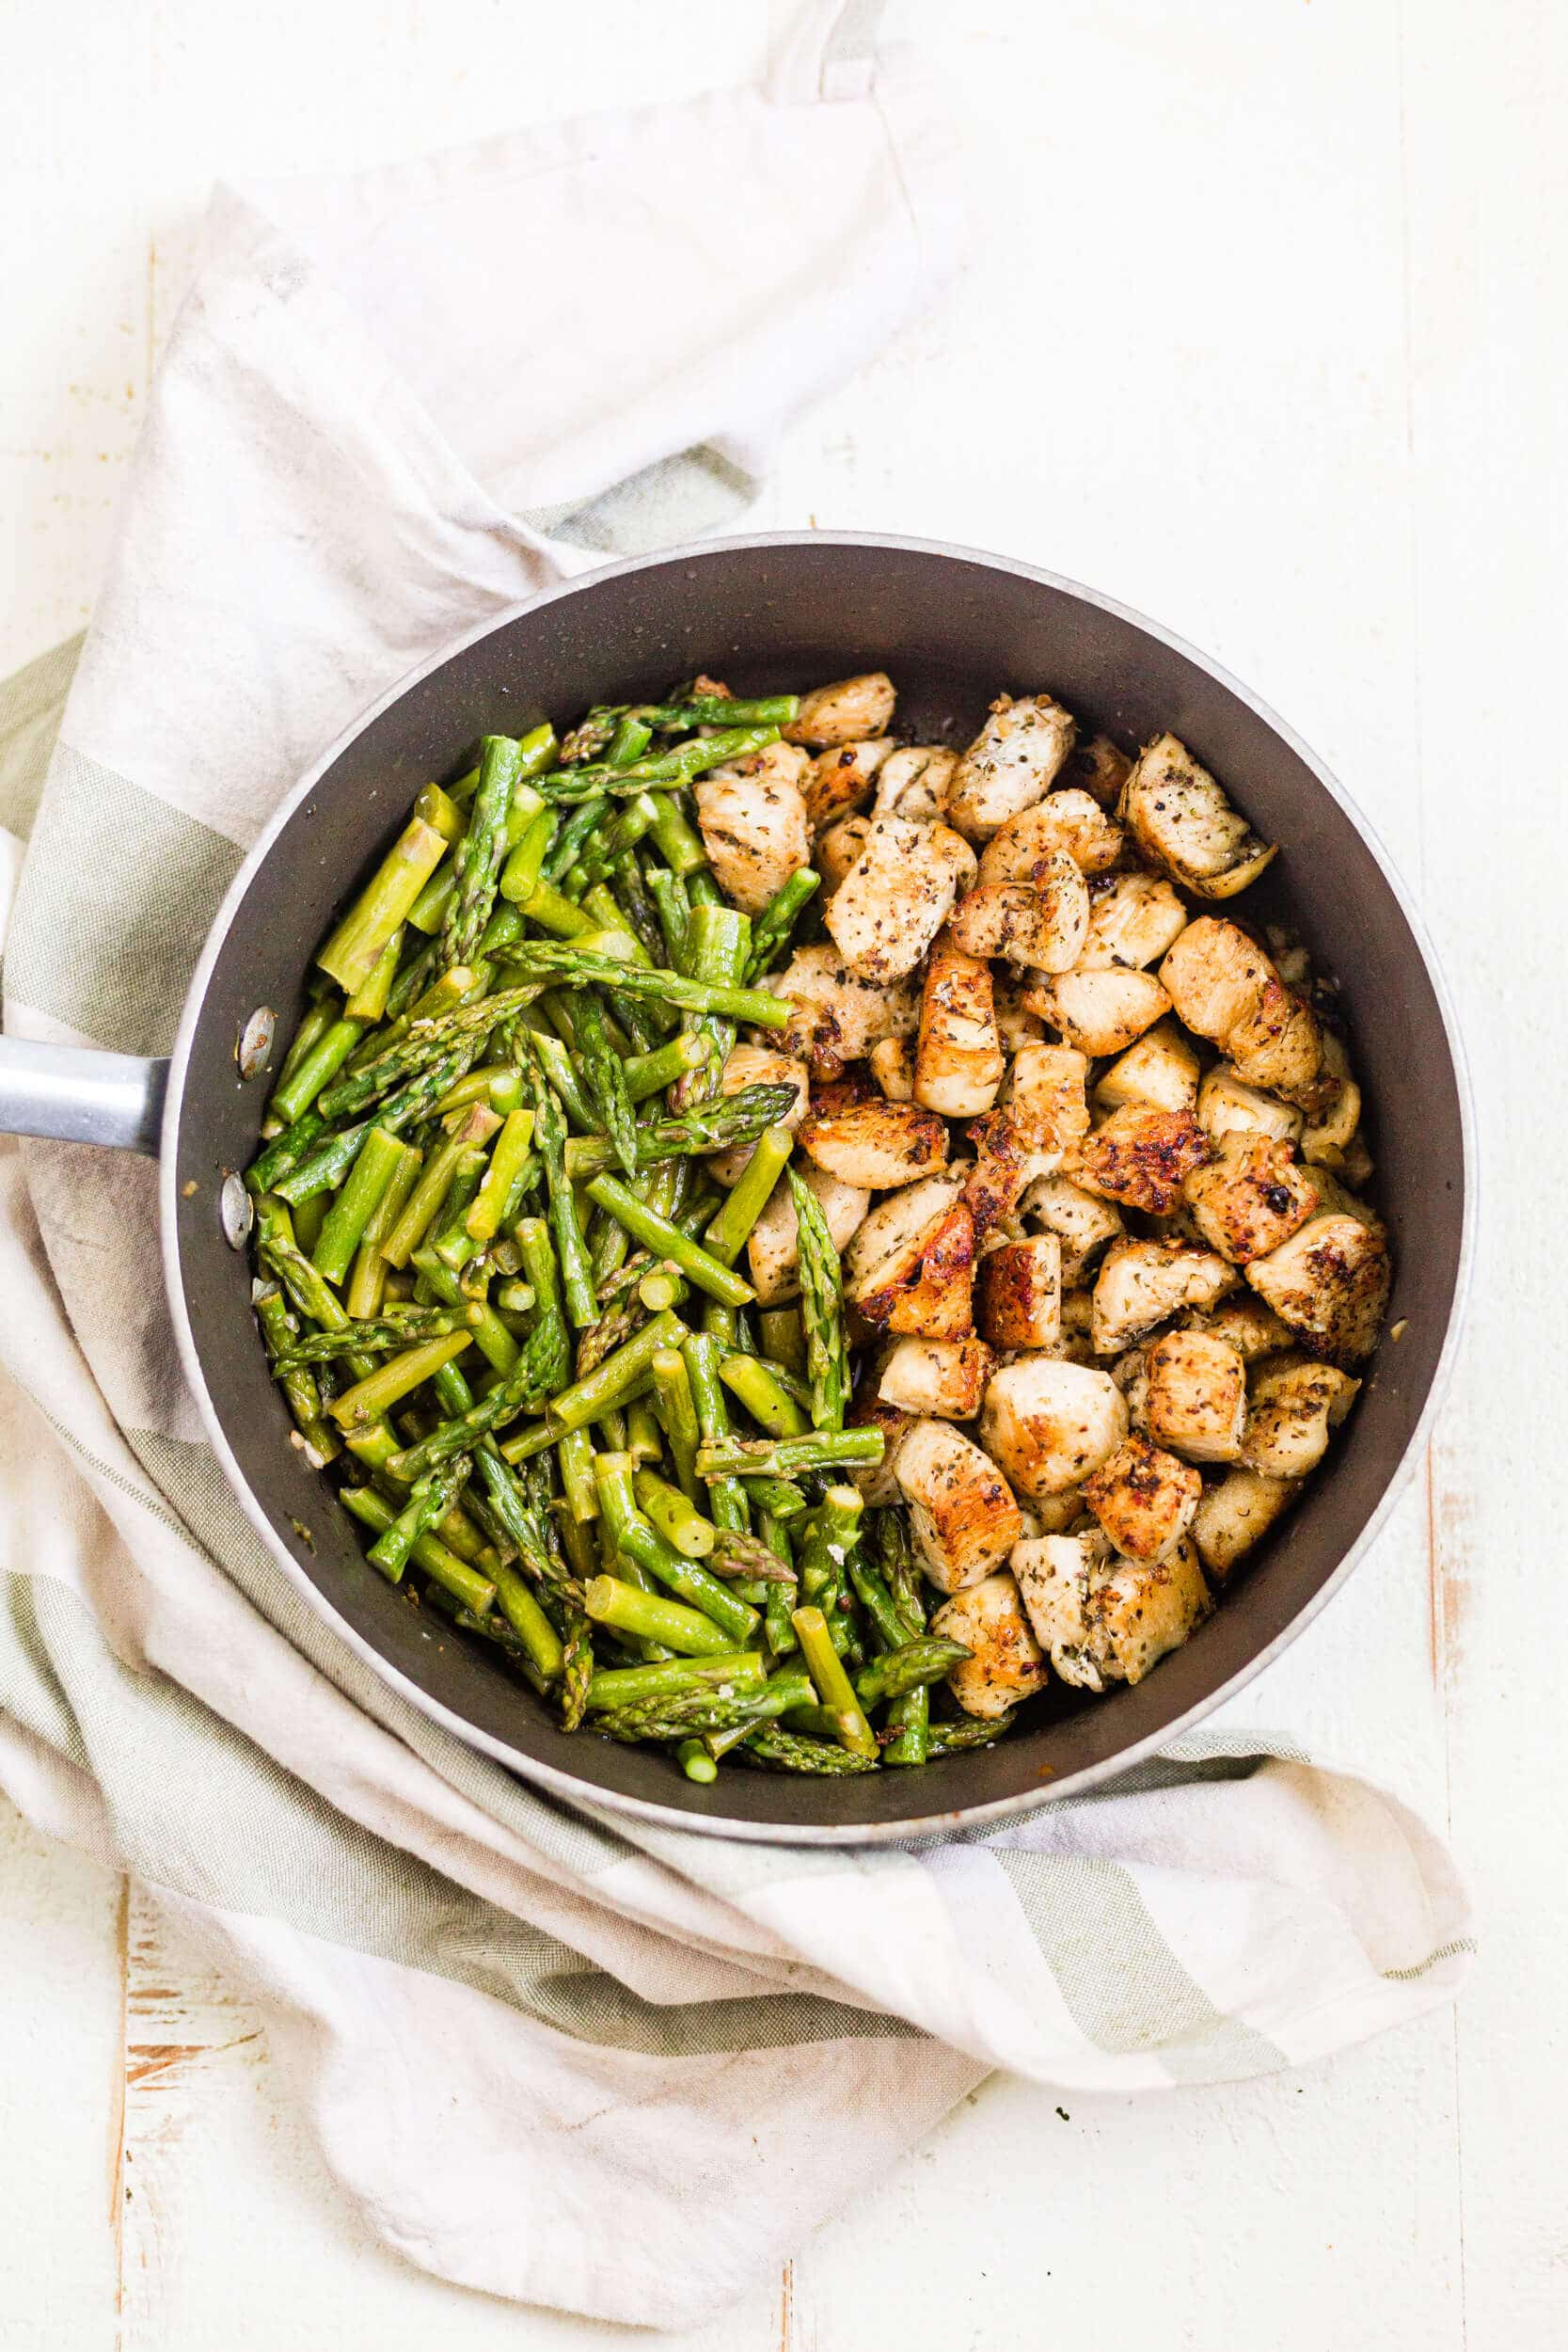 garlic chicken bites with asparagus in a saute pan